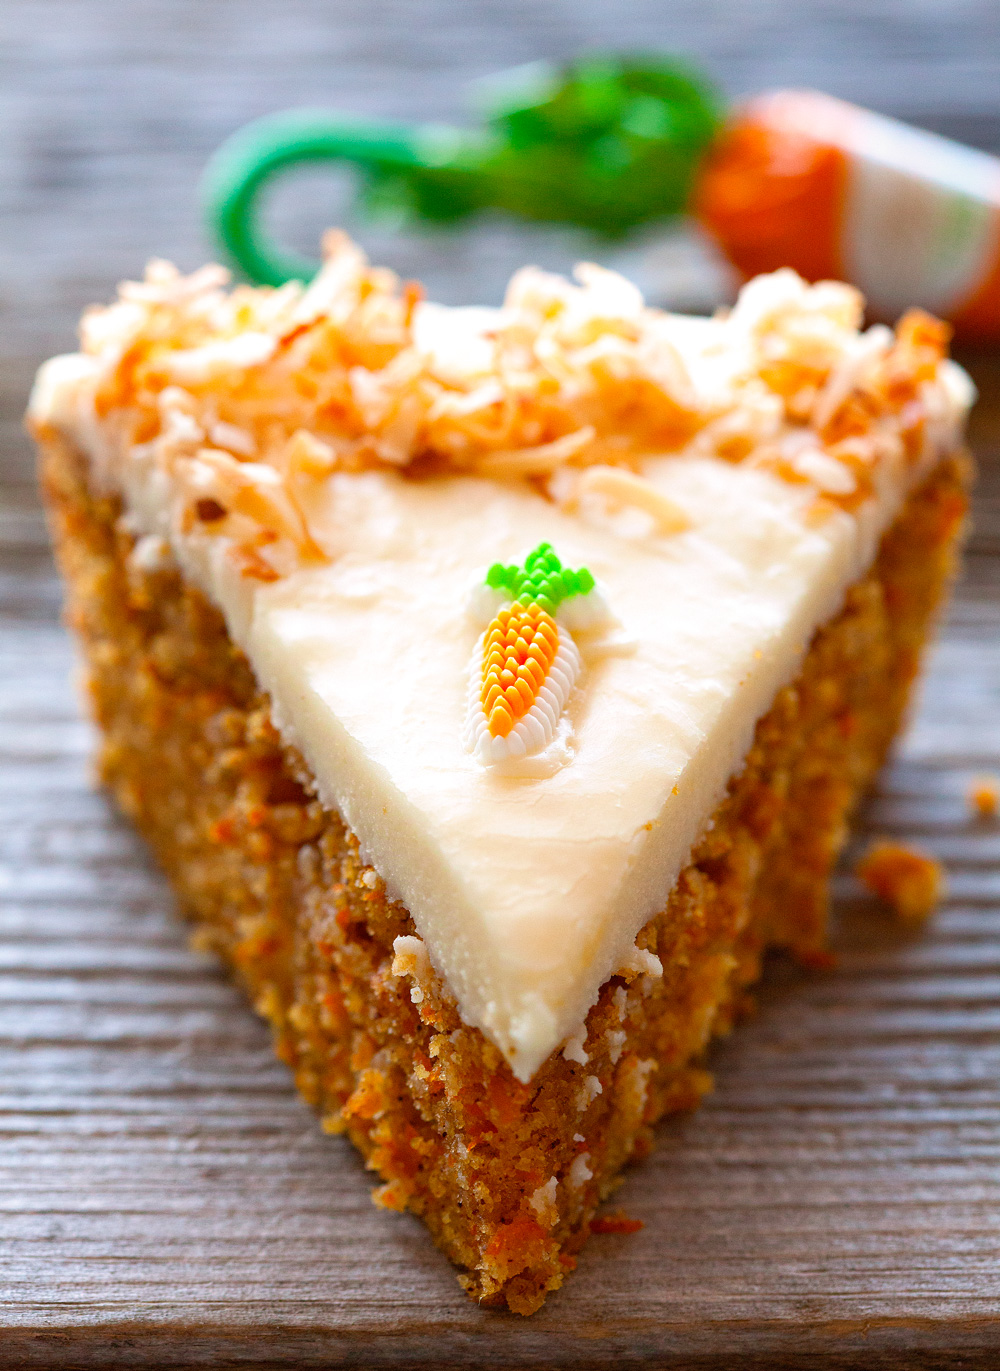 Super Moist Carrot Cake With Cream Cheese Frosting Recipe ...